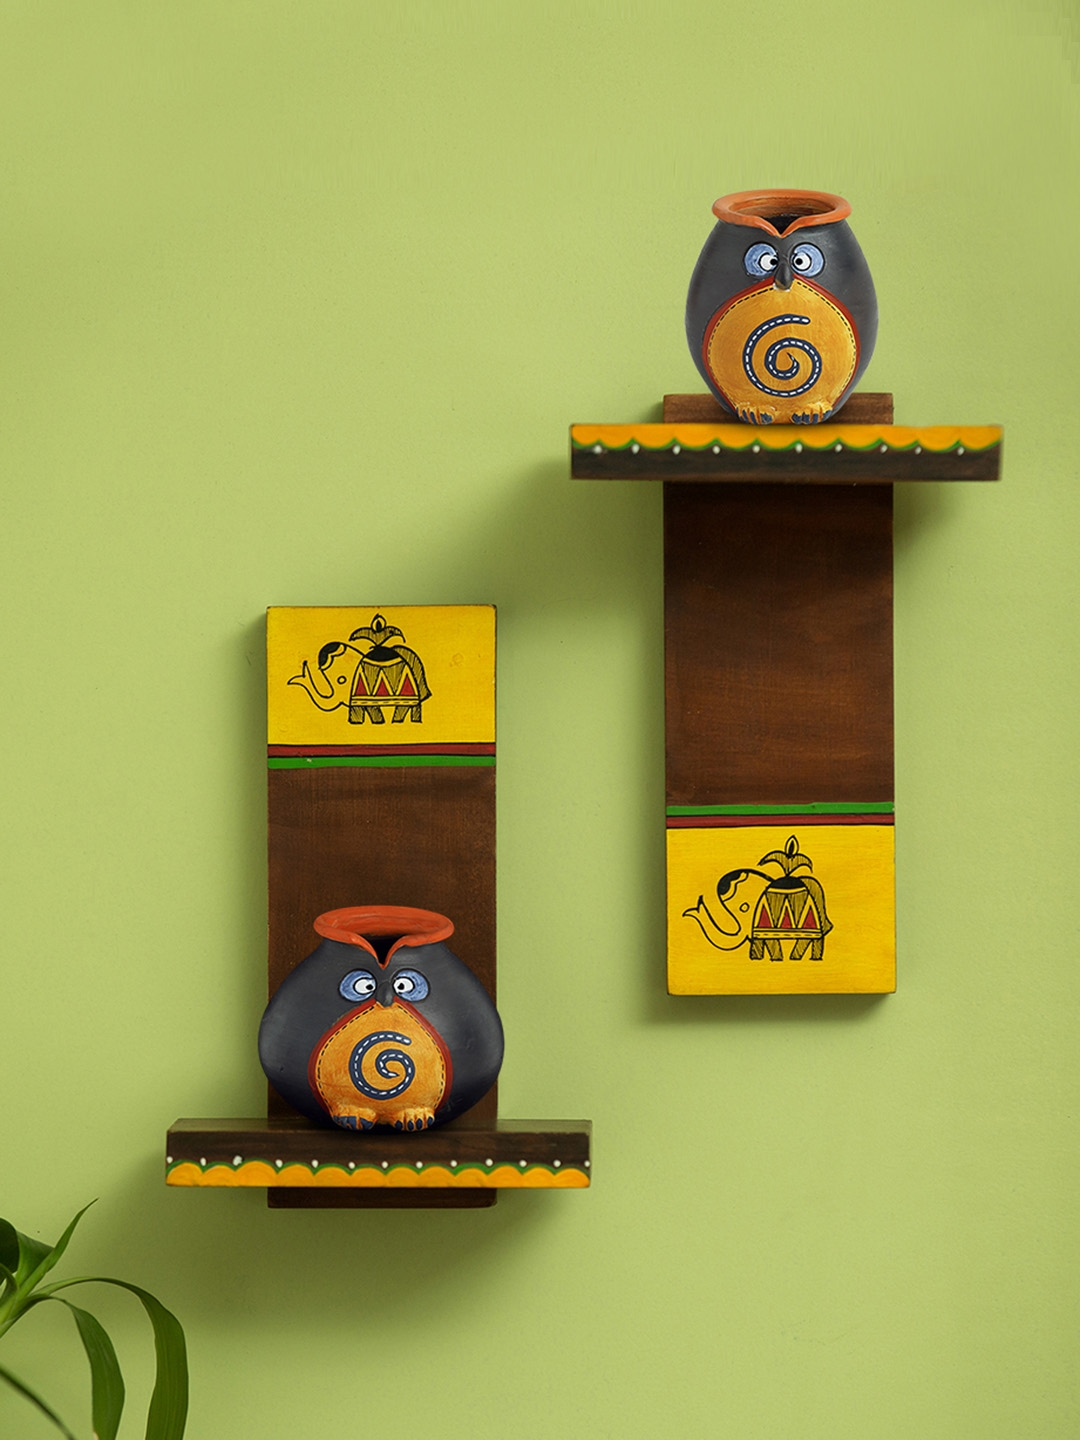 ExclusiveLane Set of 2 Brown Handcrafted Terracotta Owl Face Pots   Wooden Wall Shelves